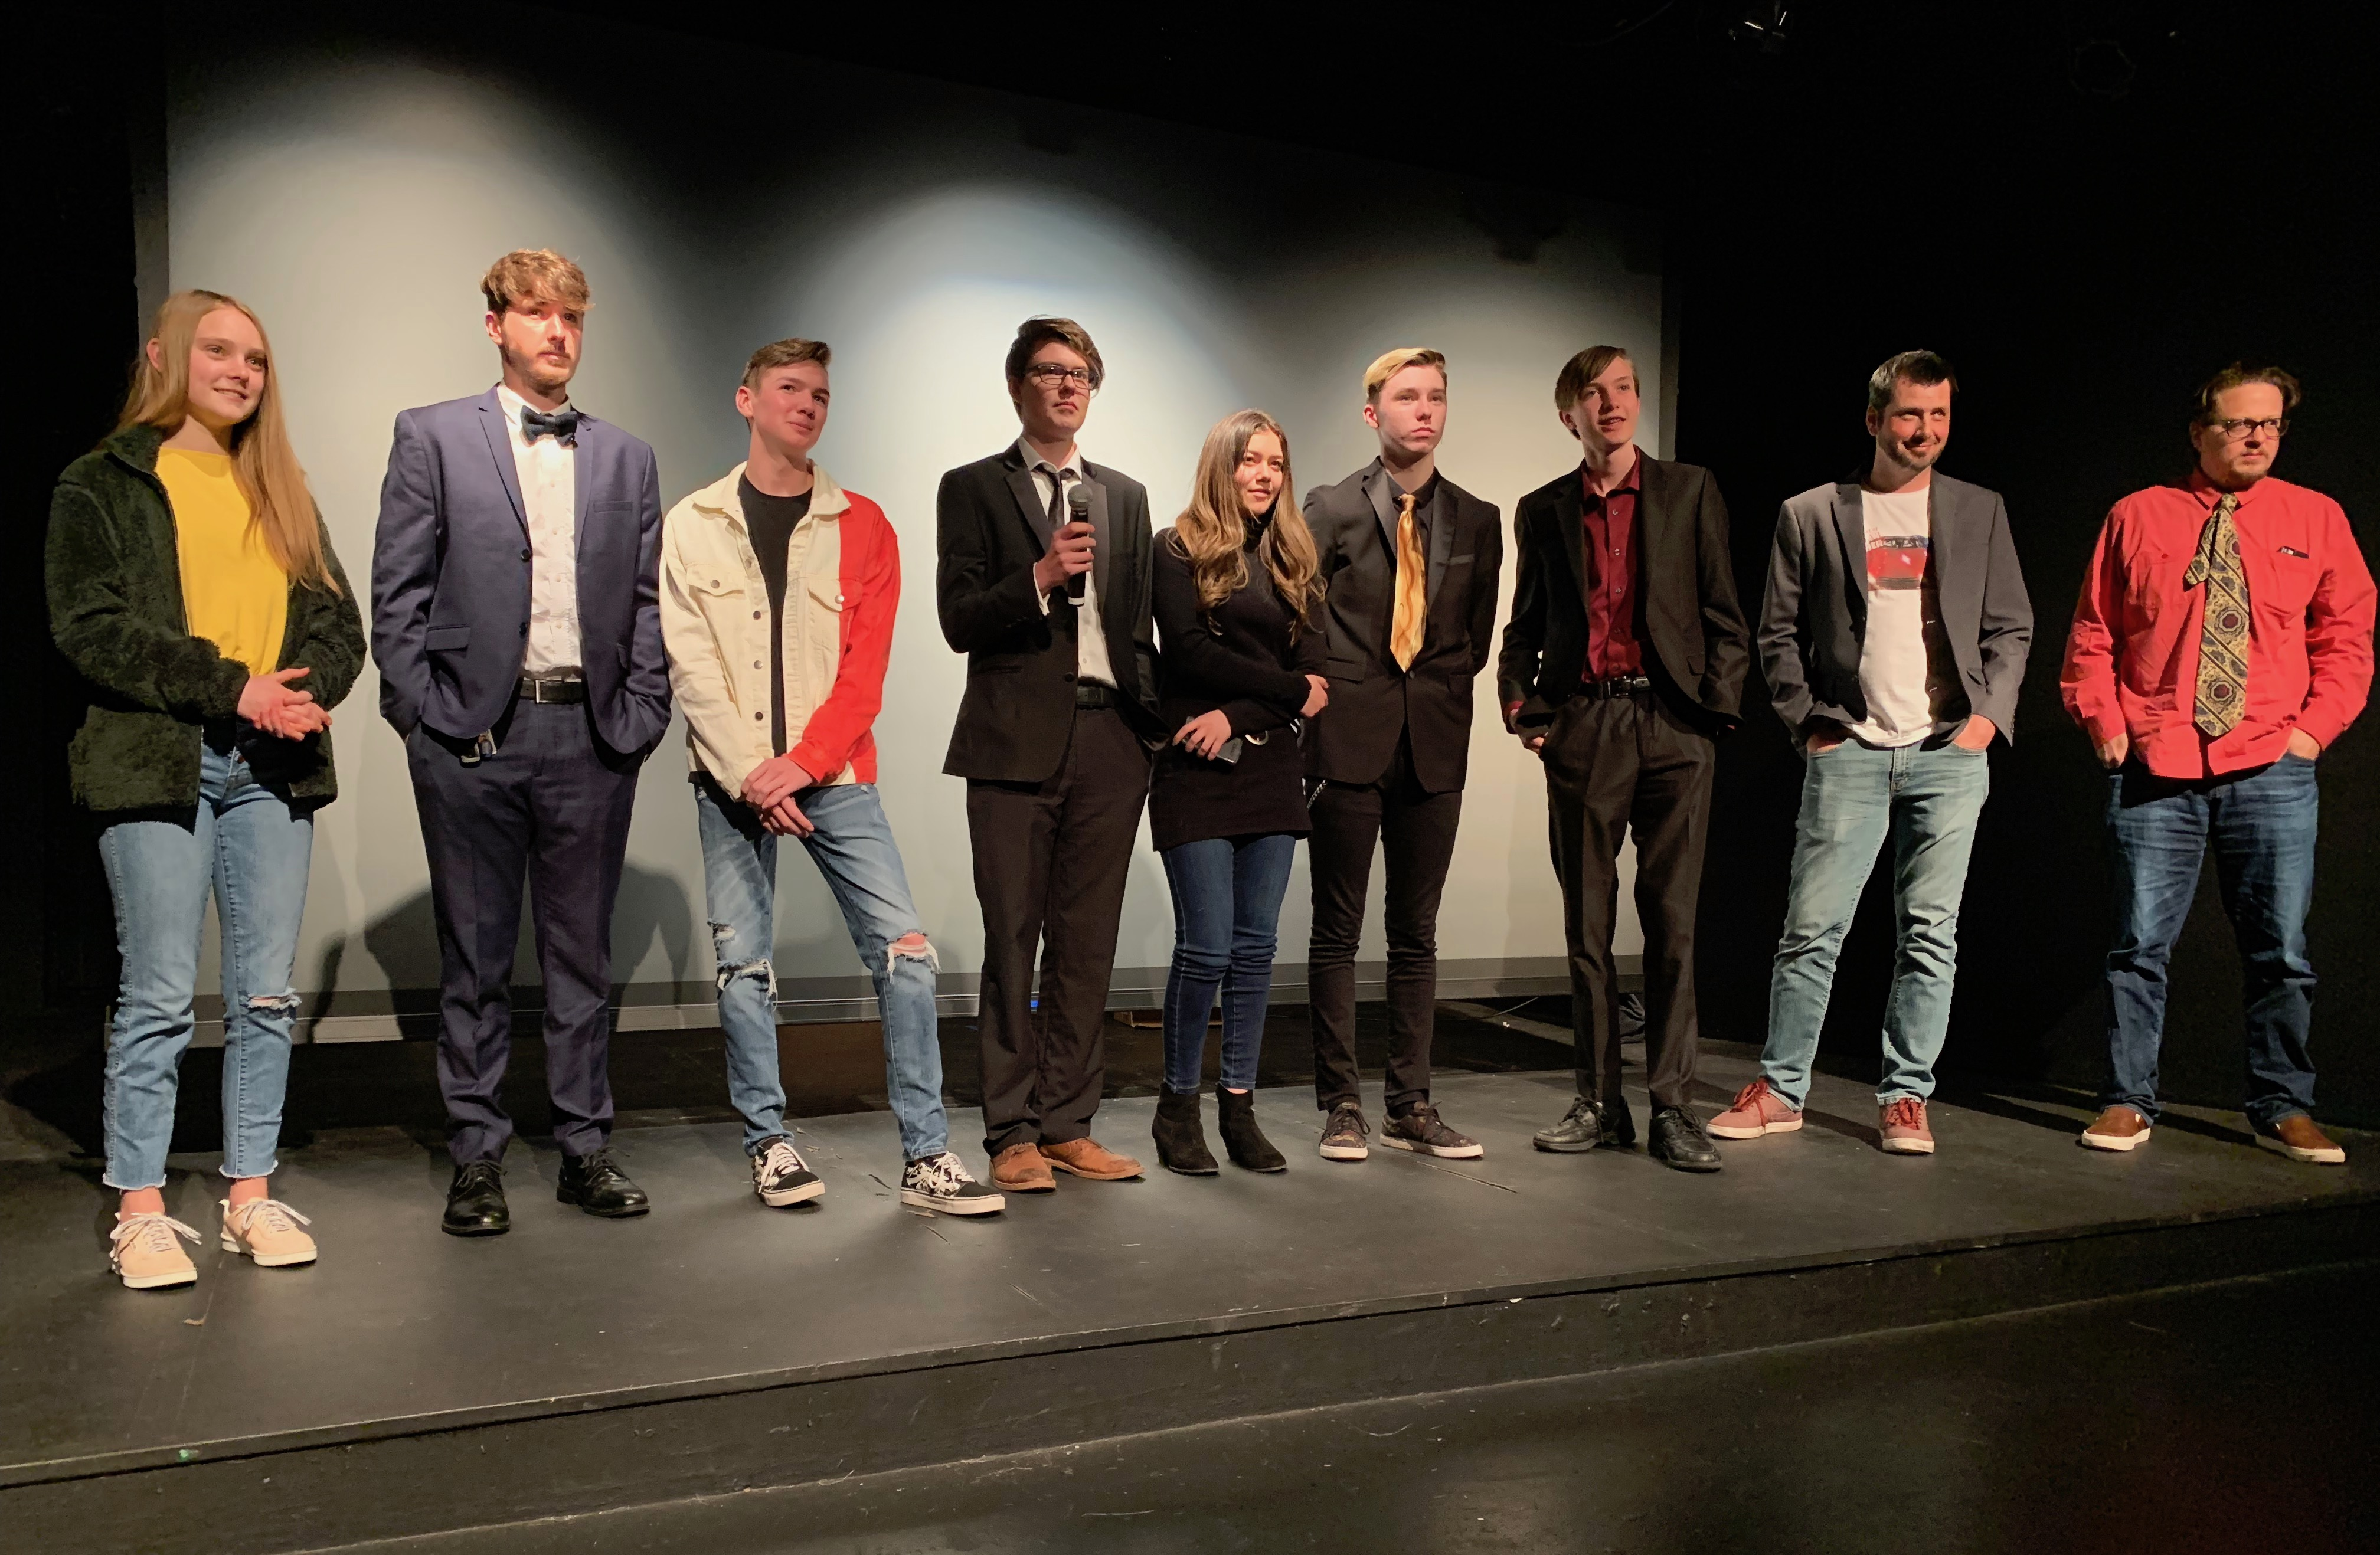 Debut of local filmmaker's second film gets full house